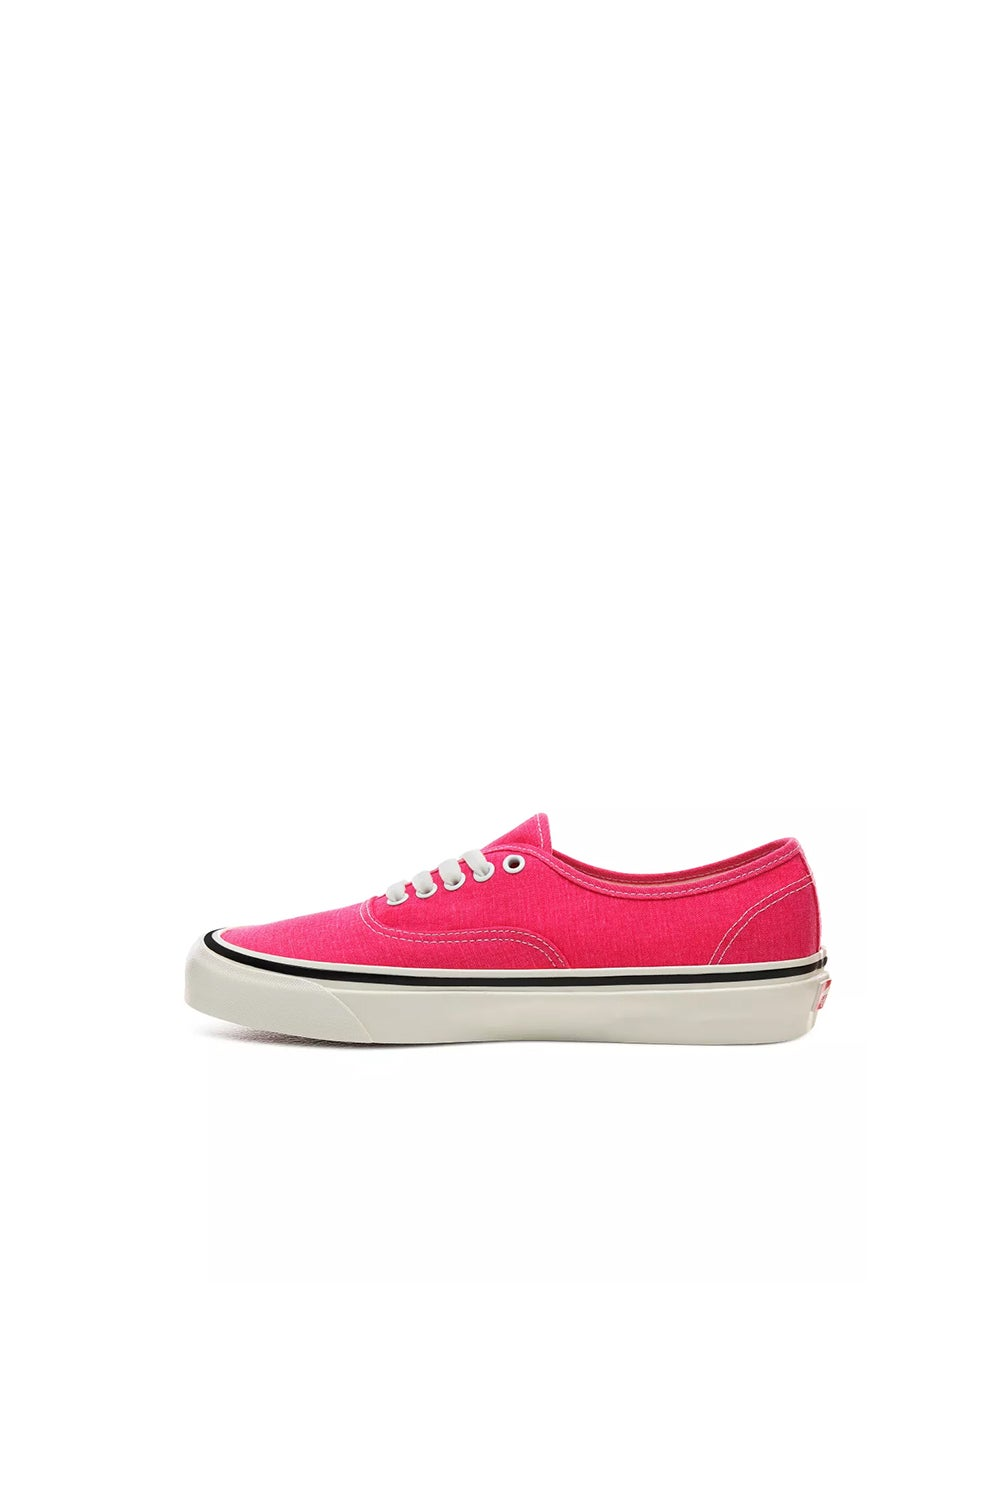 Vans Authentic 44 DX Anaheim Factory OG Pink